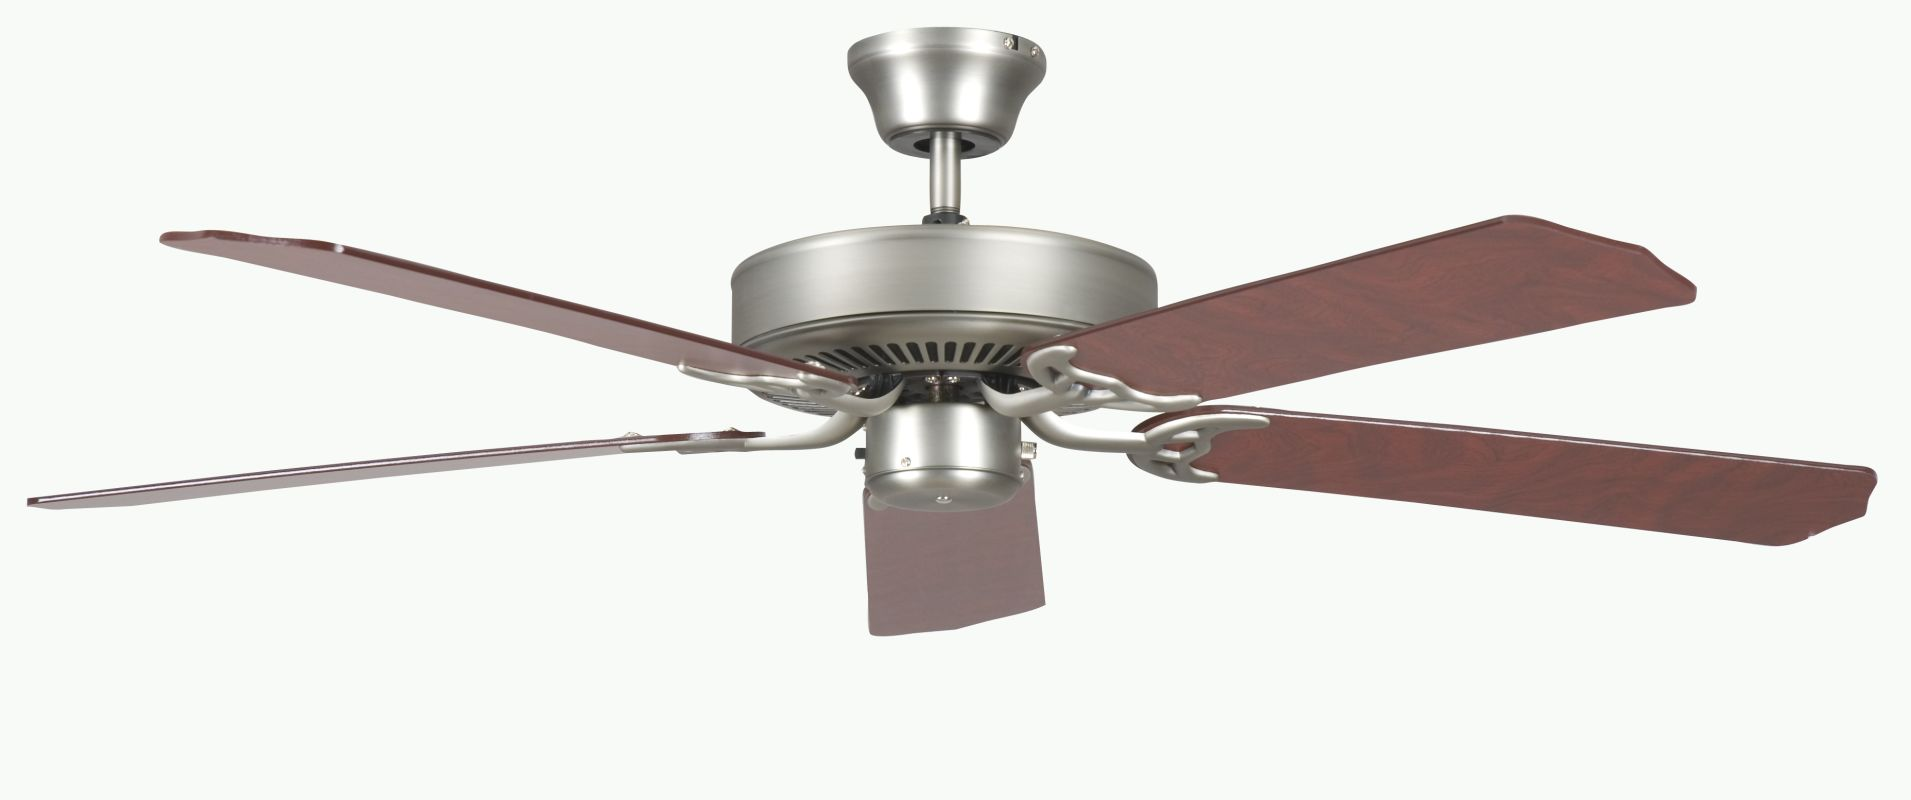 "Concord 52HE5 Indoor 52"" 5 Blade Ceiling Fan with Blades Included from"